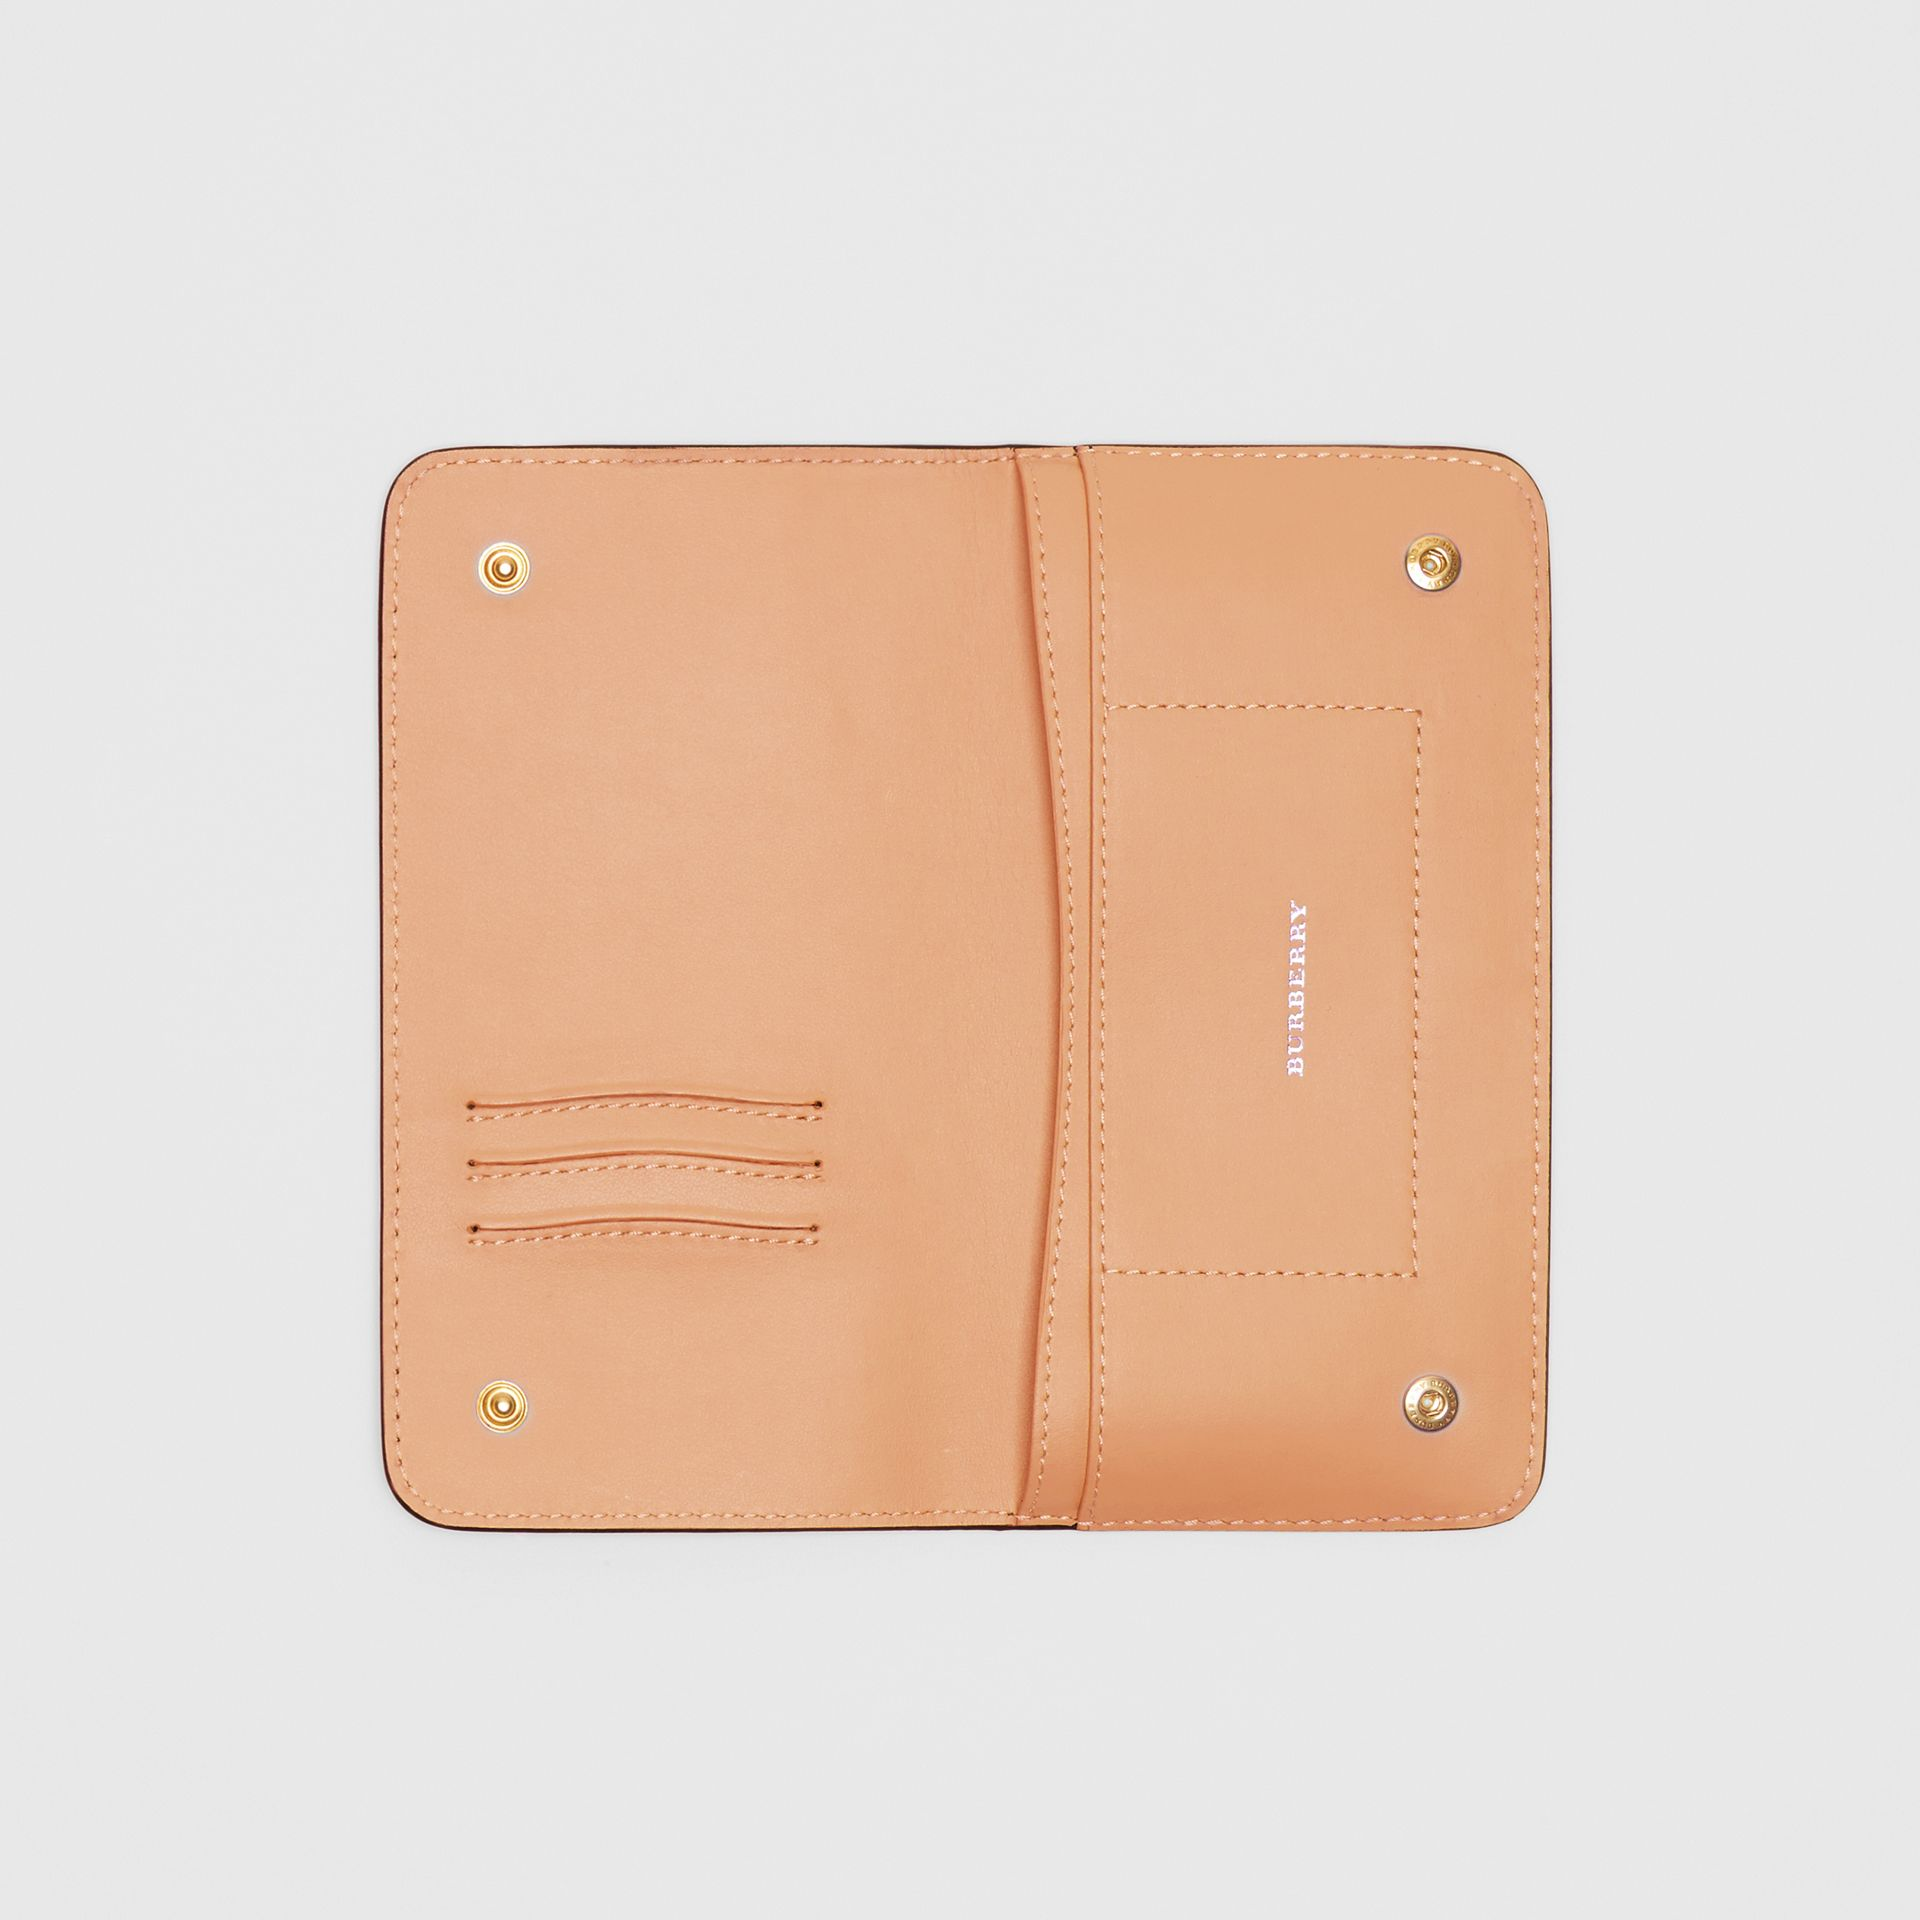 EKD Leather Phone Wallet in Light Camel - Women | Burberry - gallery image 2